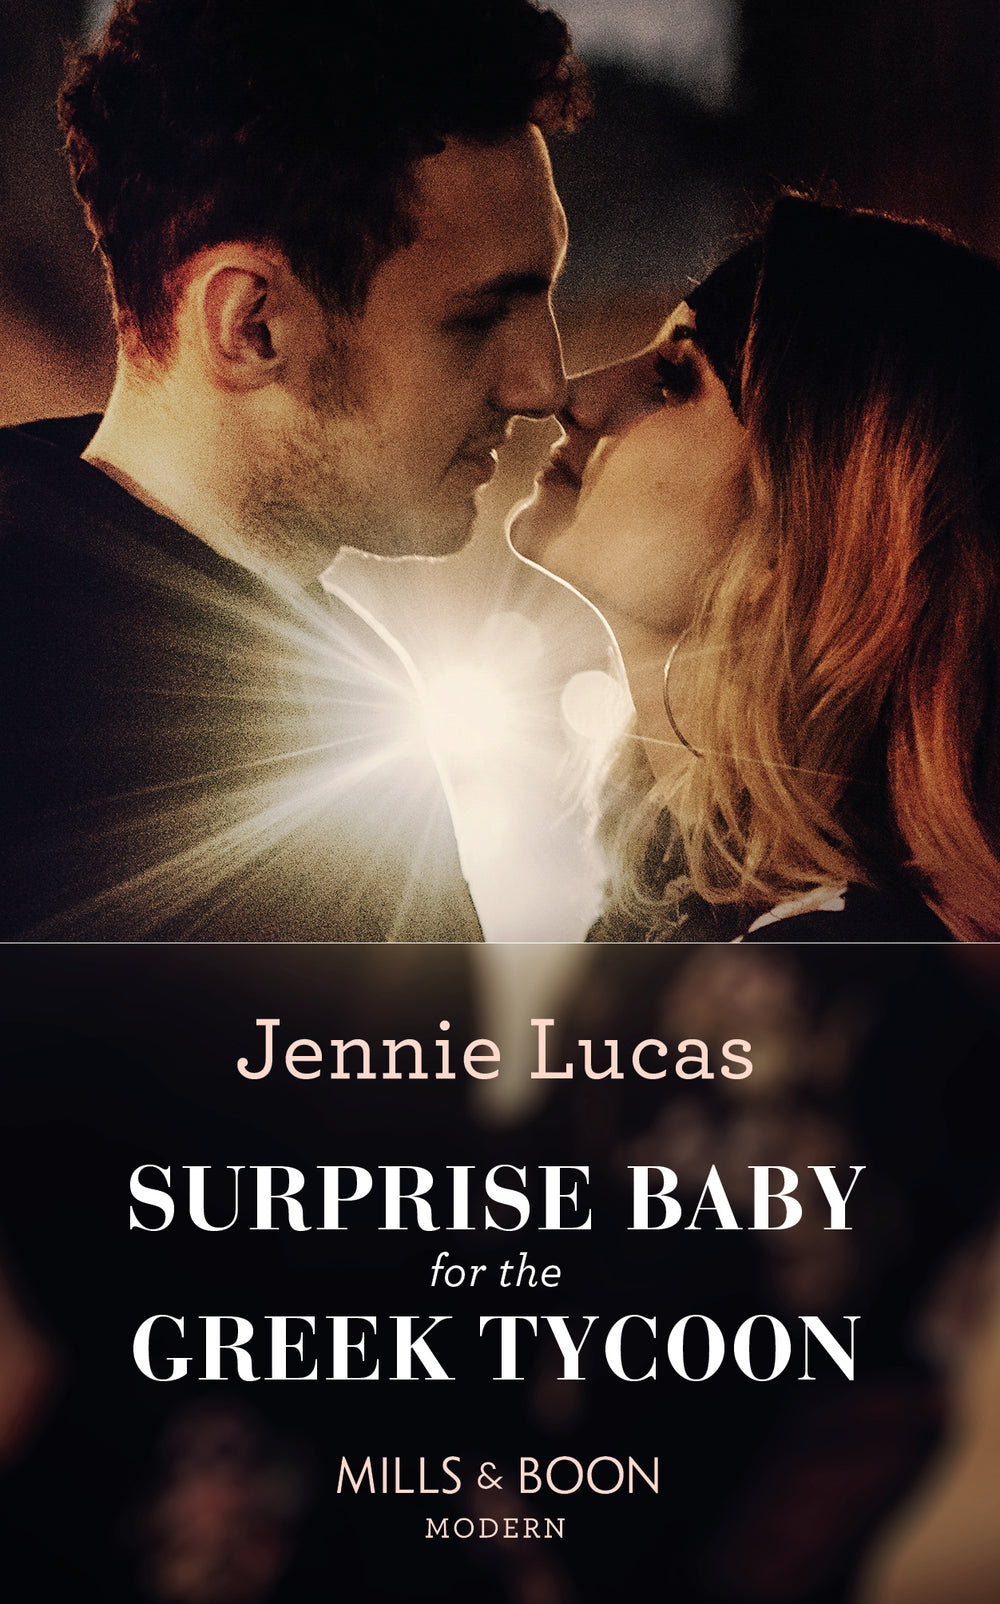 Surprise Baby for the Greek Tycoon - Chapter 16